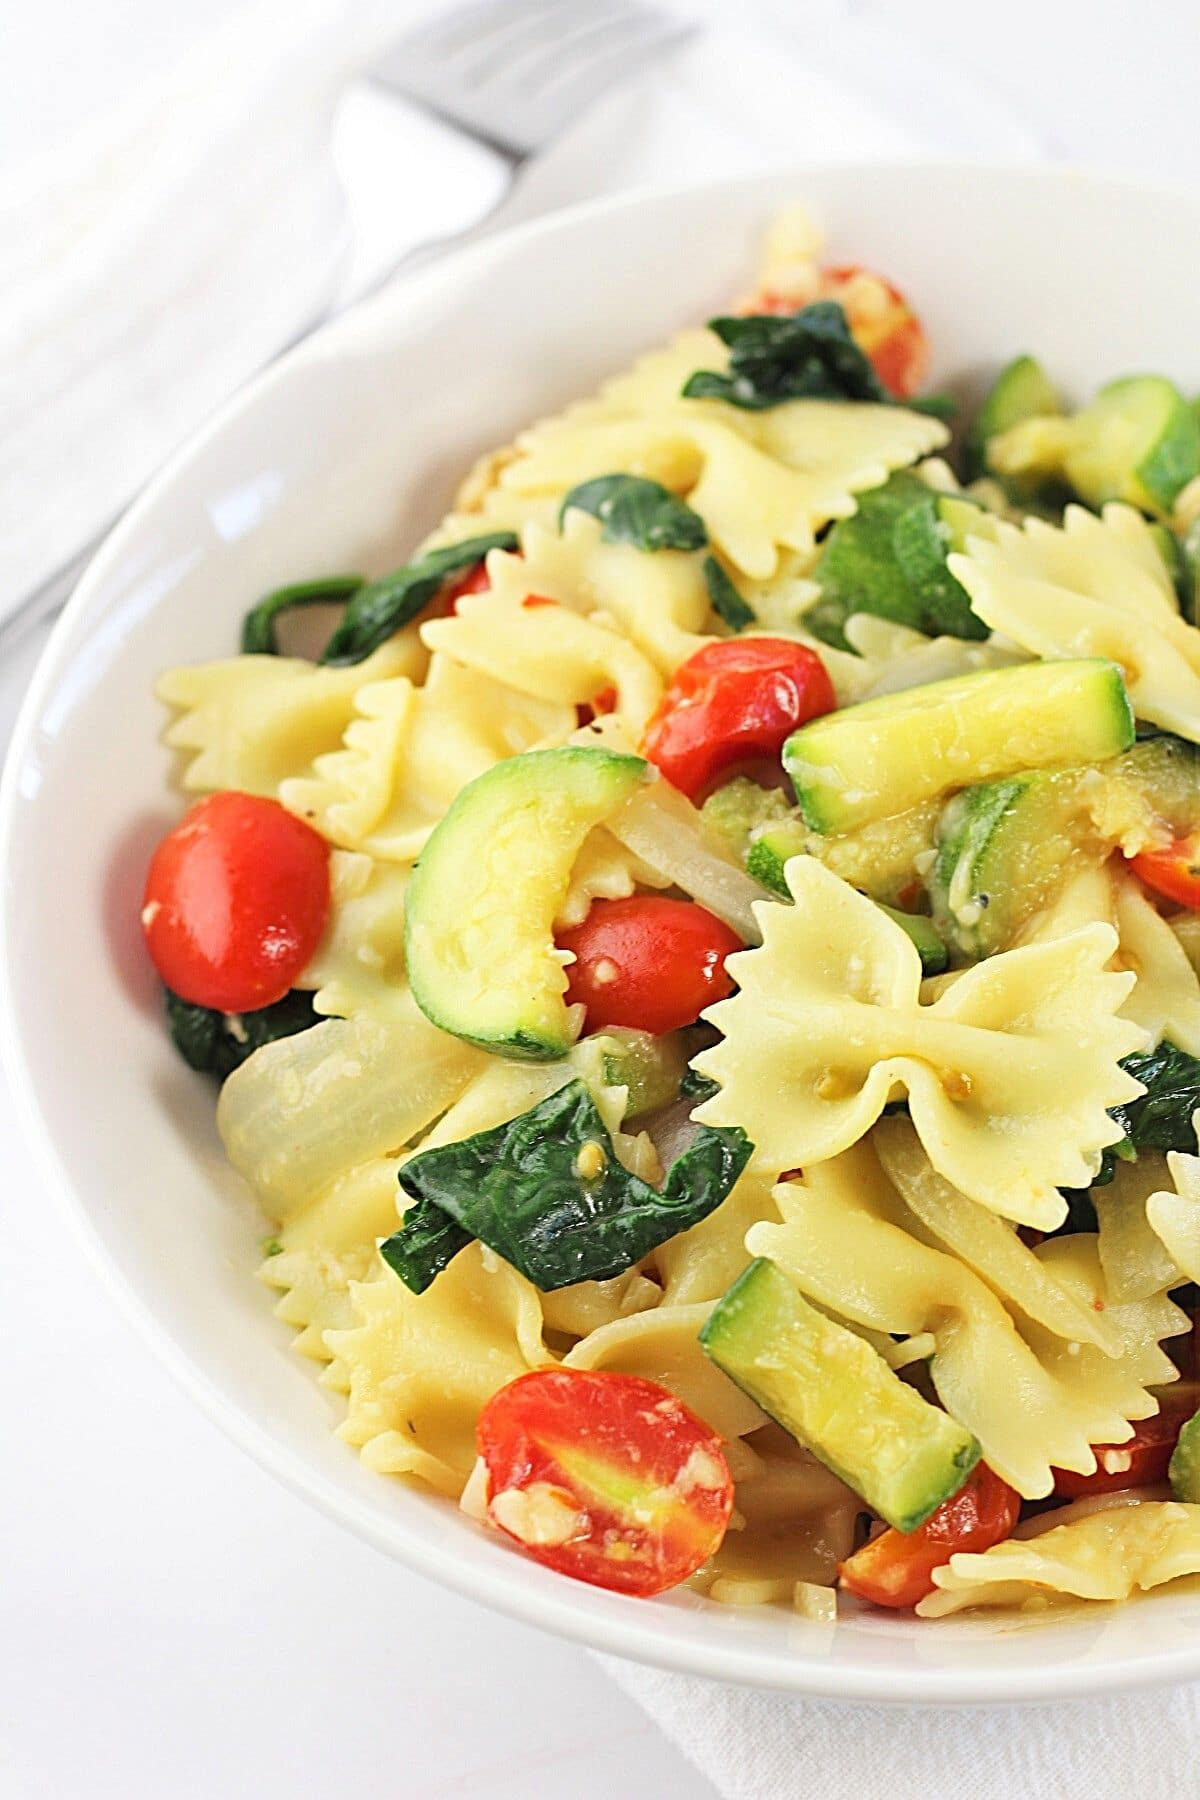 farfalle pasta with zucchini, spinach and tomatoes in a white bowl with a fork on the side